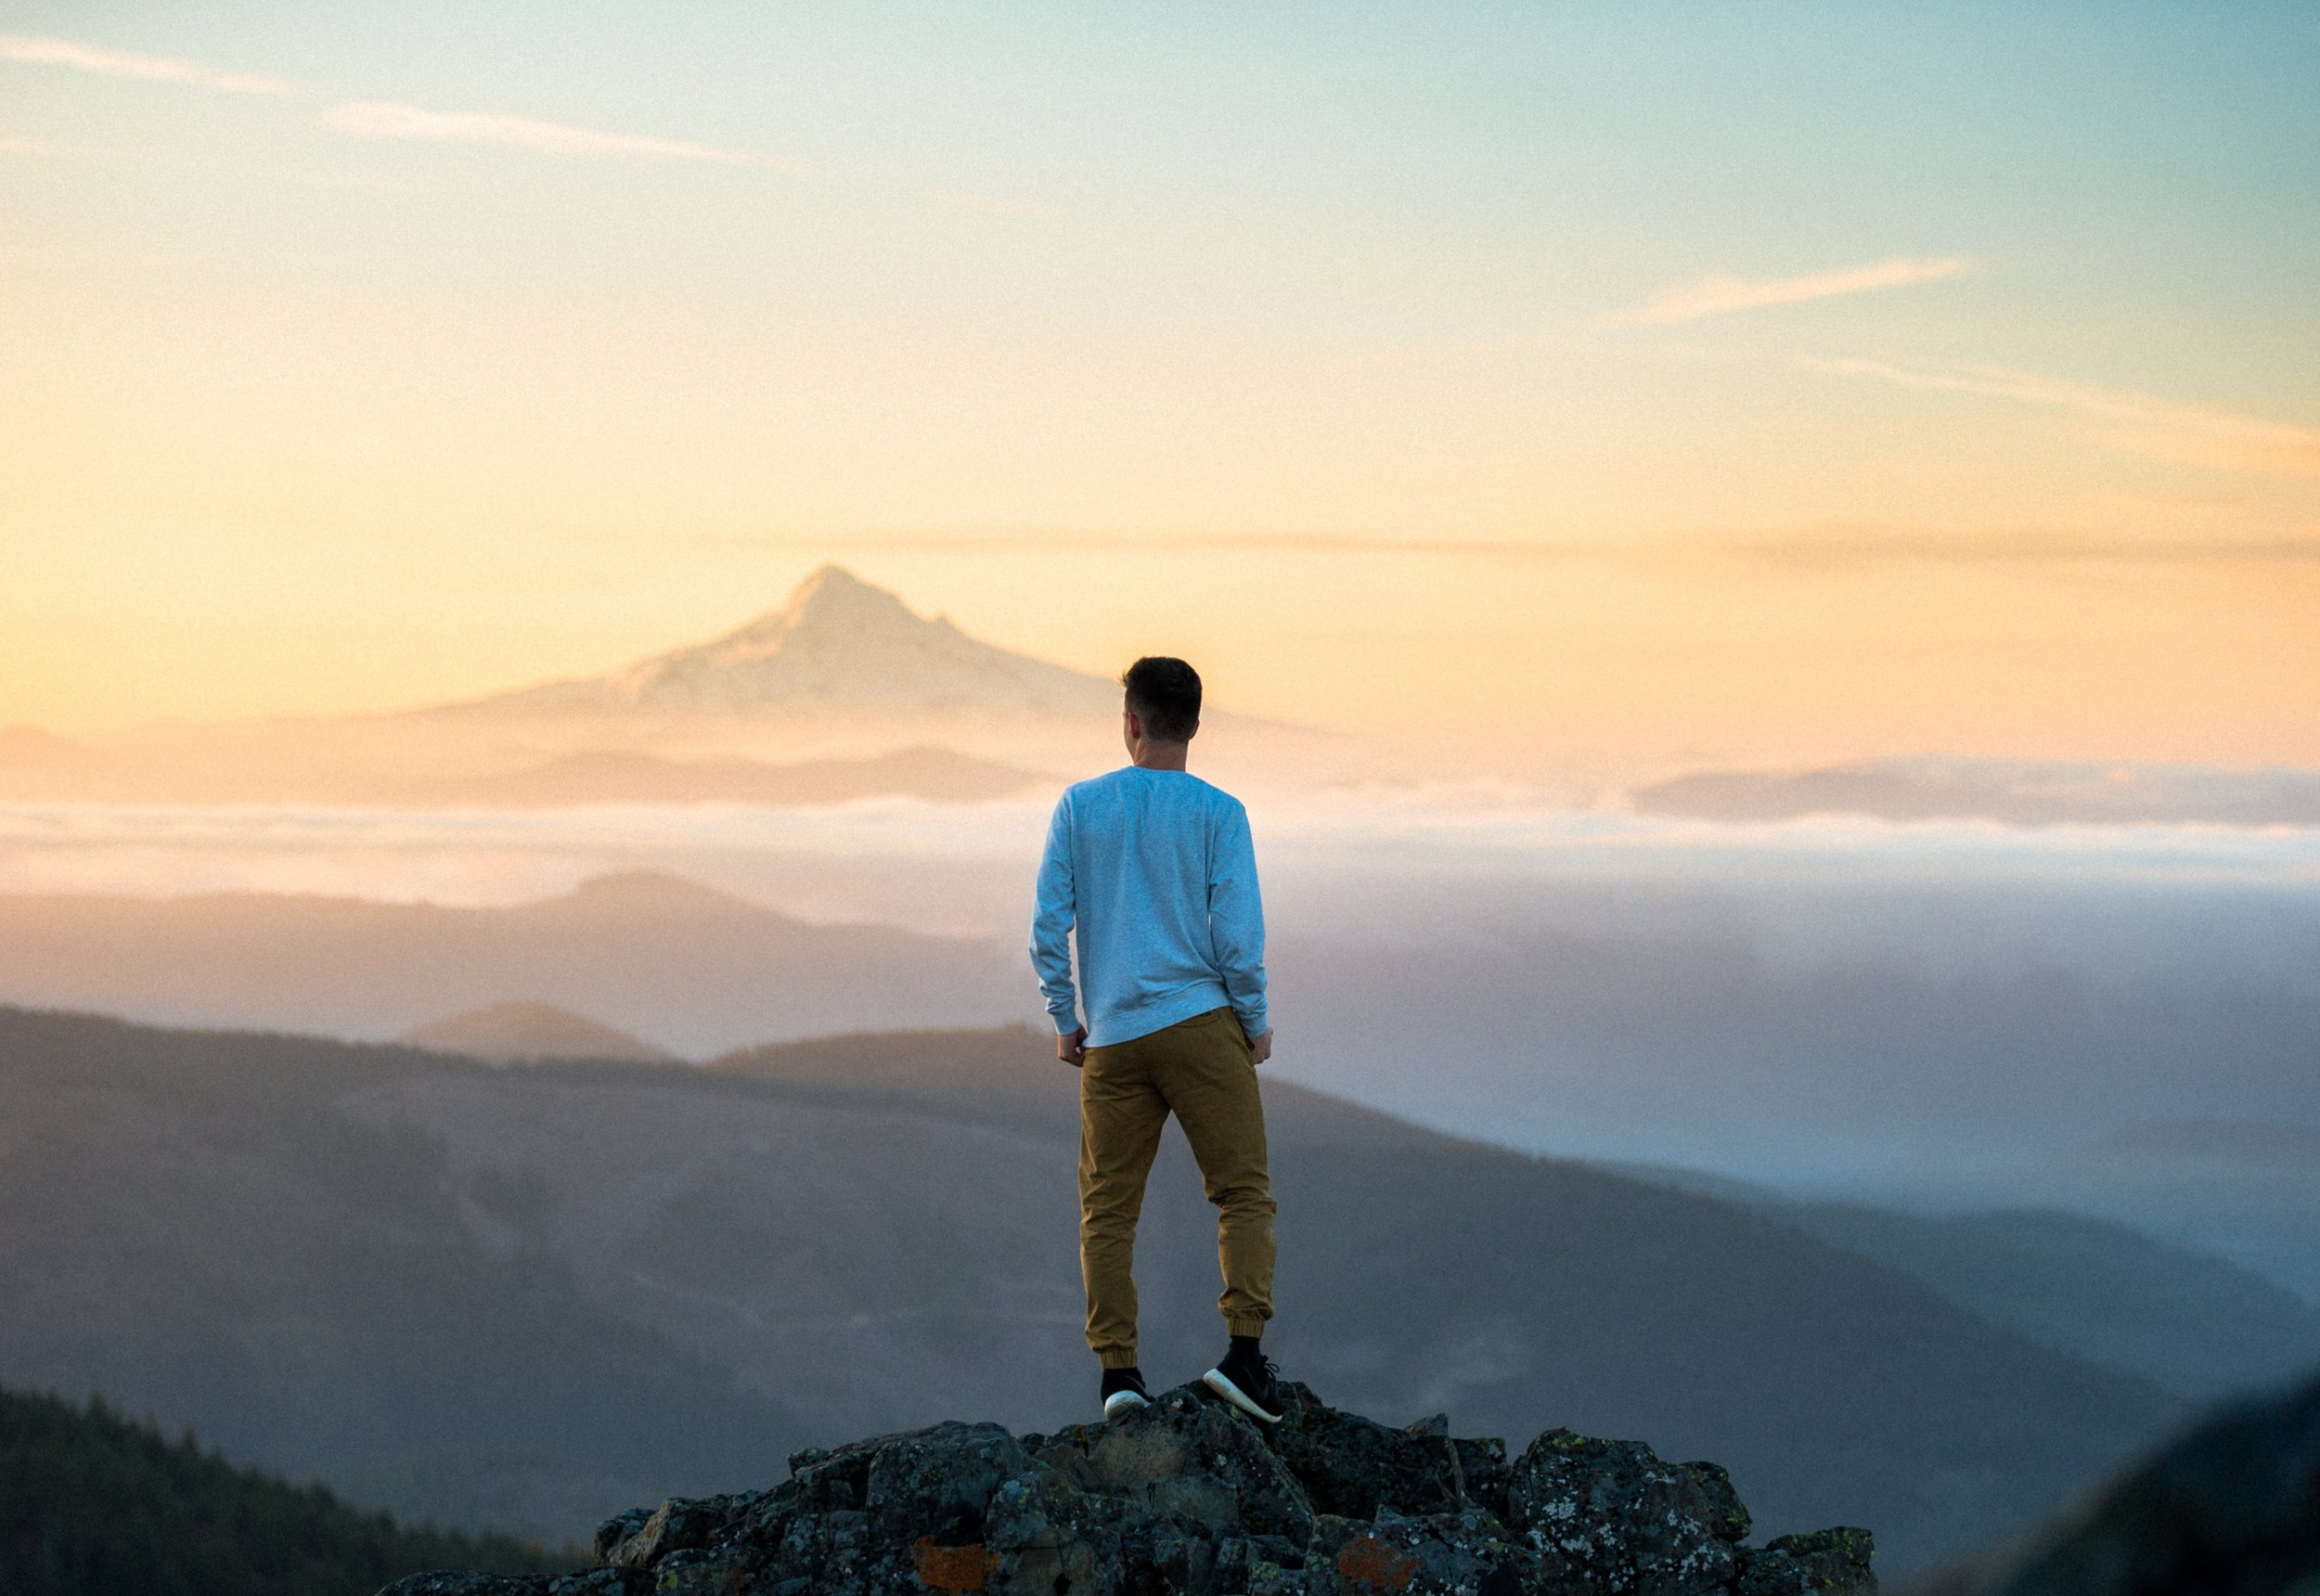 Are You Living The Life Of Your Choosing? - Photo by Tim Bogdanovon Unsplash